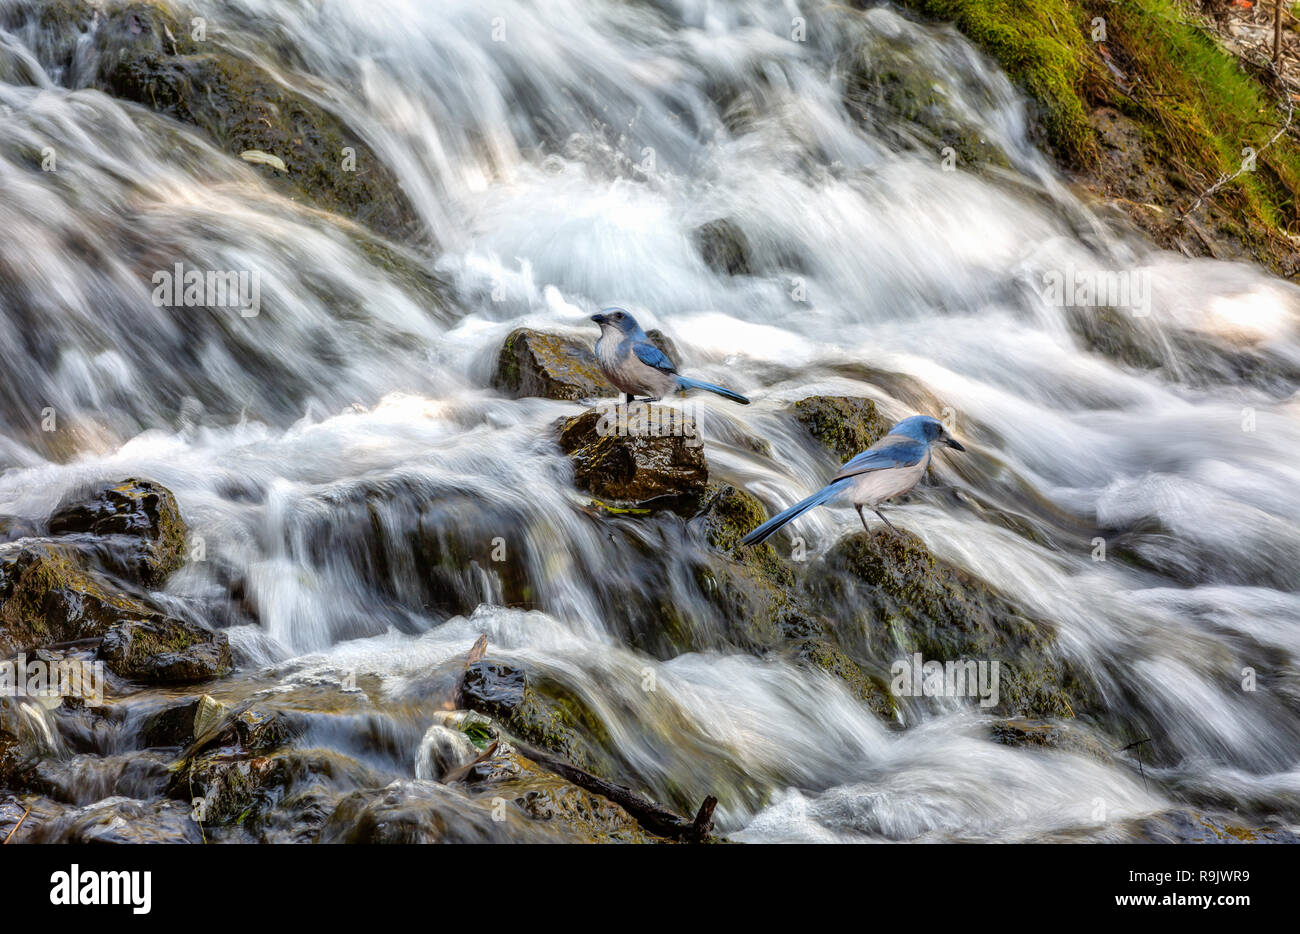 Waterfall close up view with Himalayan blue birds at Uttarakhand India - Stock Image